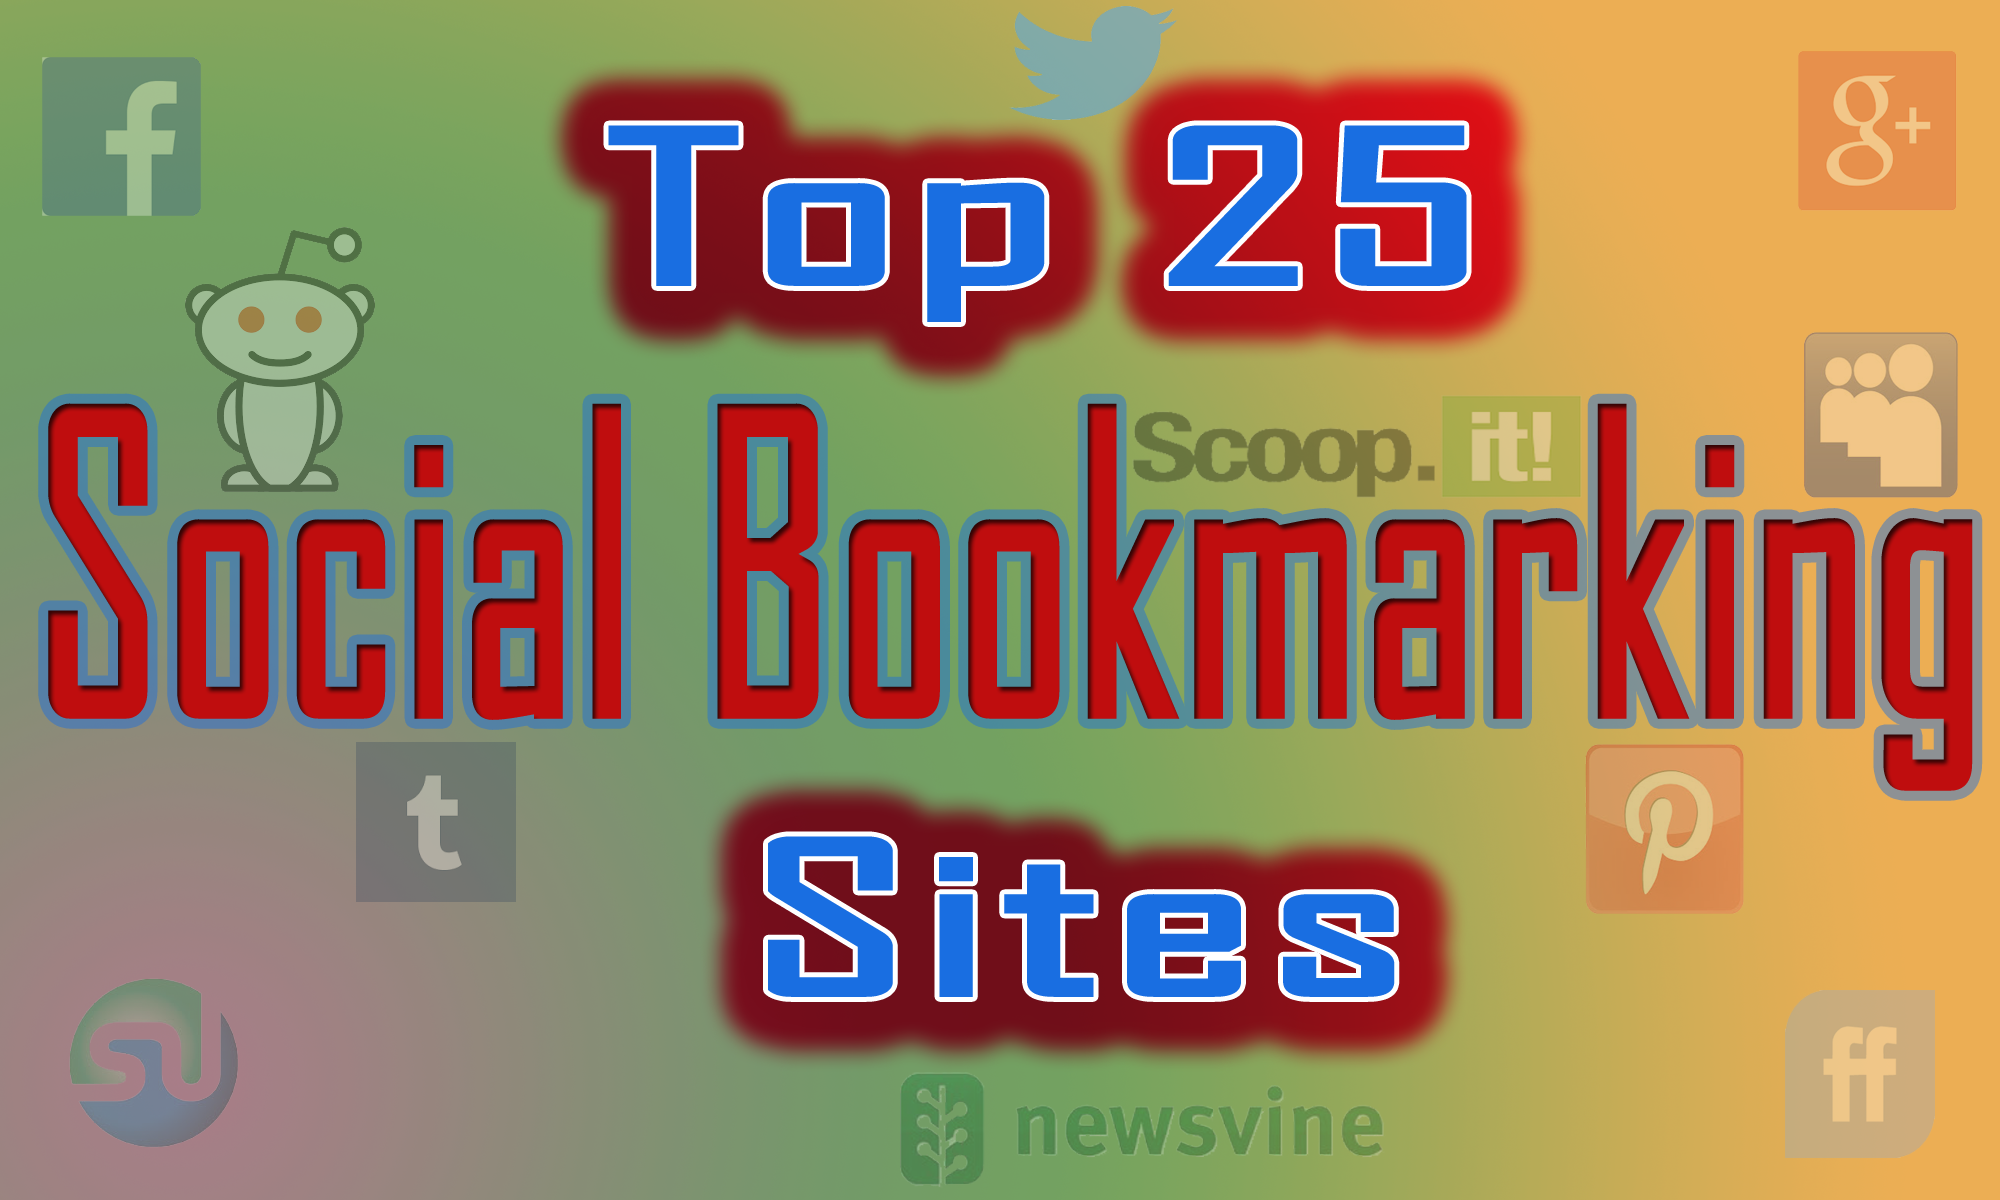 -Instantly-Provide-you-manually-25-Top-PR10-5-Social-Bookmarks-On-Your-Site-with-report